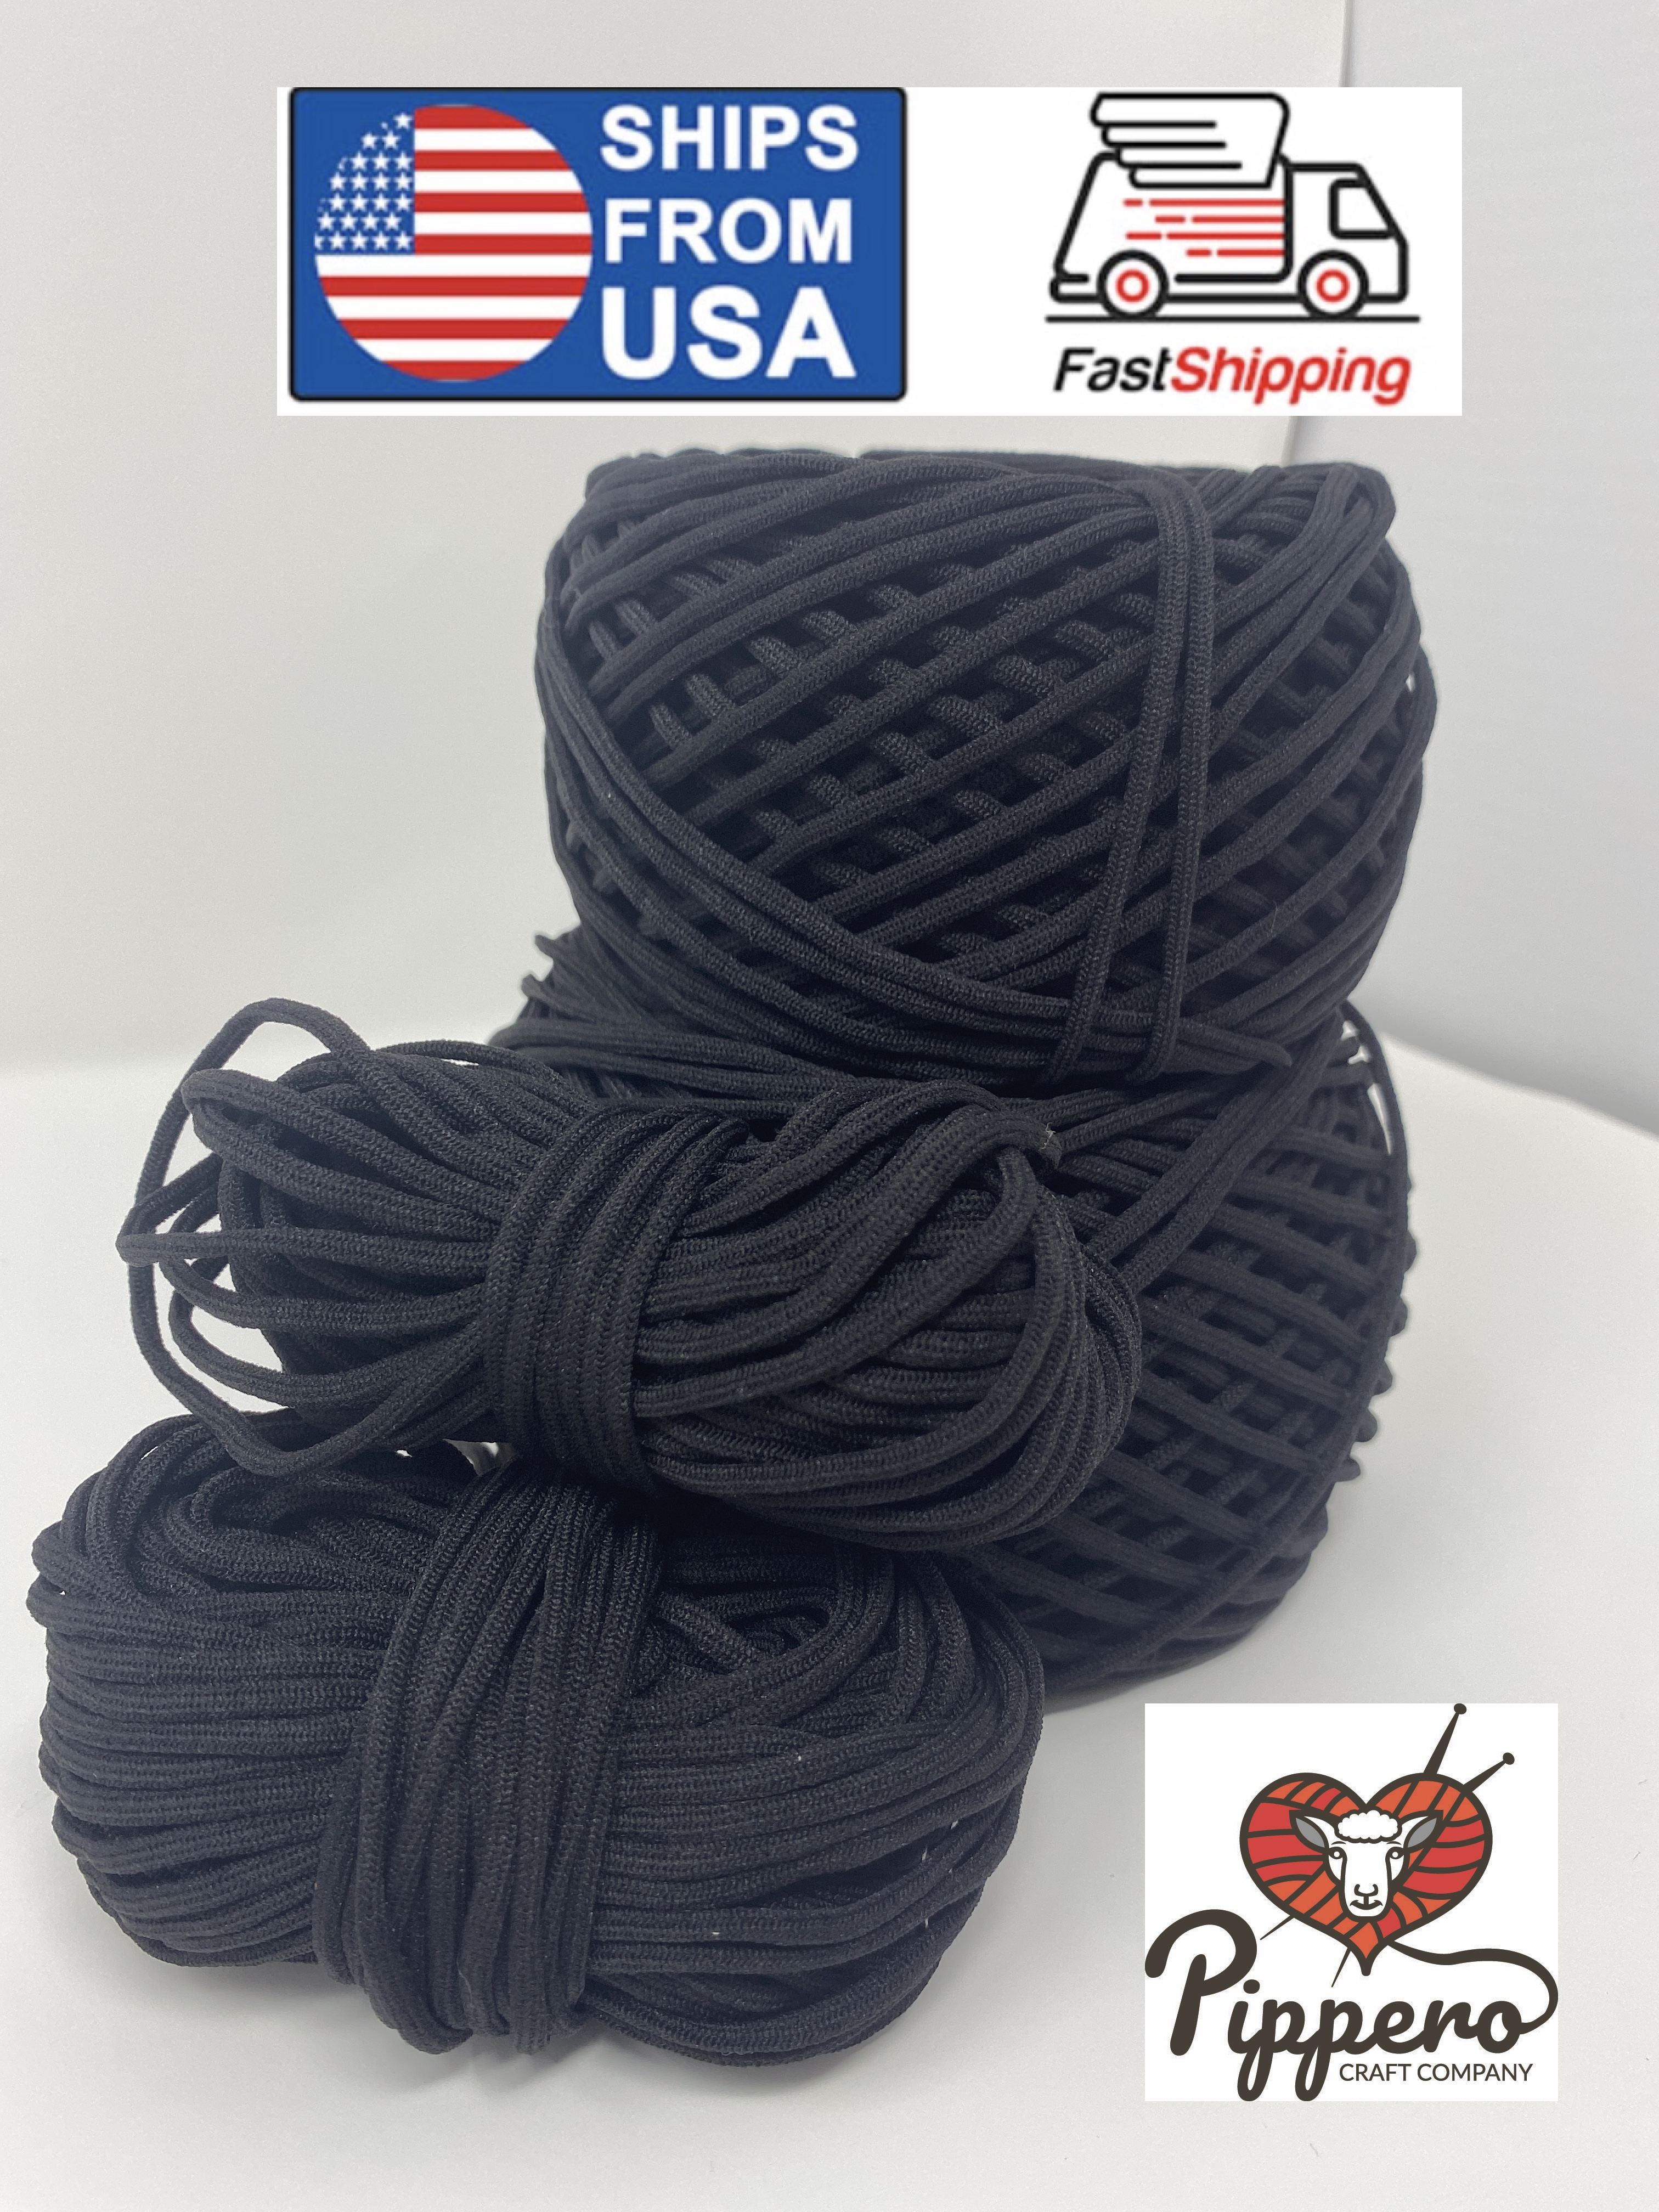 Pippero Black 3mm 1 8 Inch Elastic Cord Band For Face Mask For Mask Making Sewing Diy Black Usa Nextday Ship 20